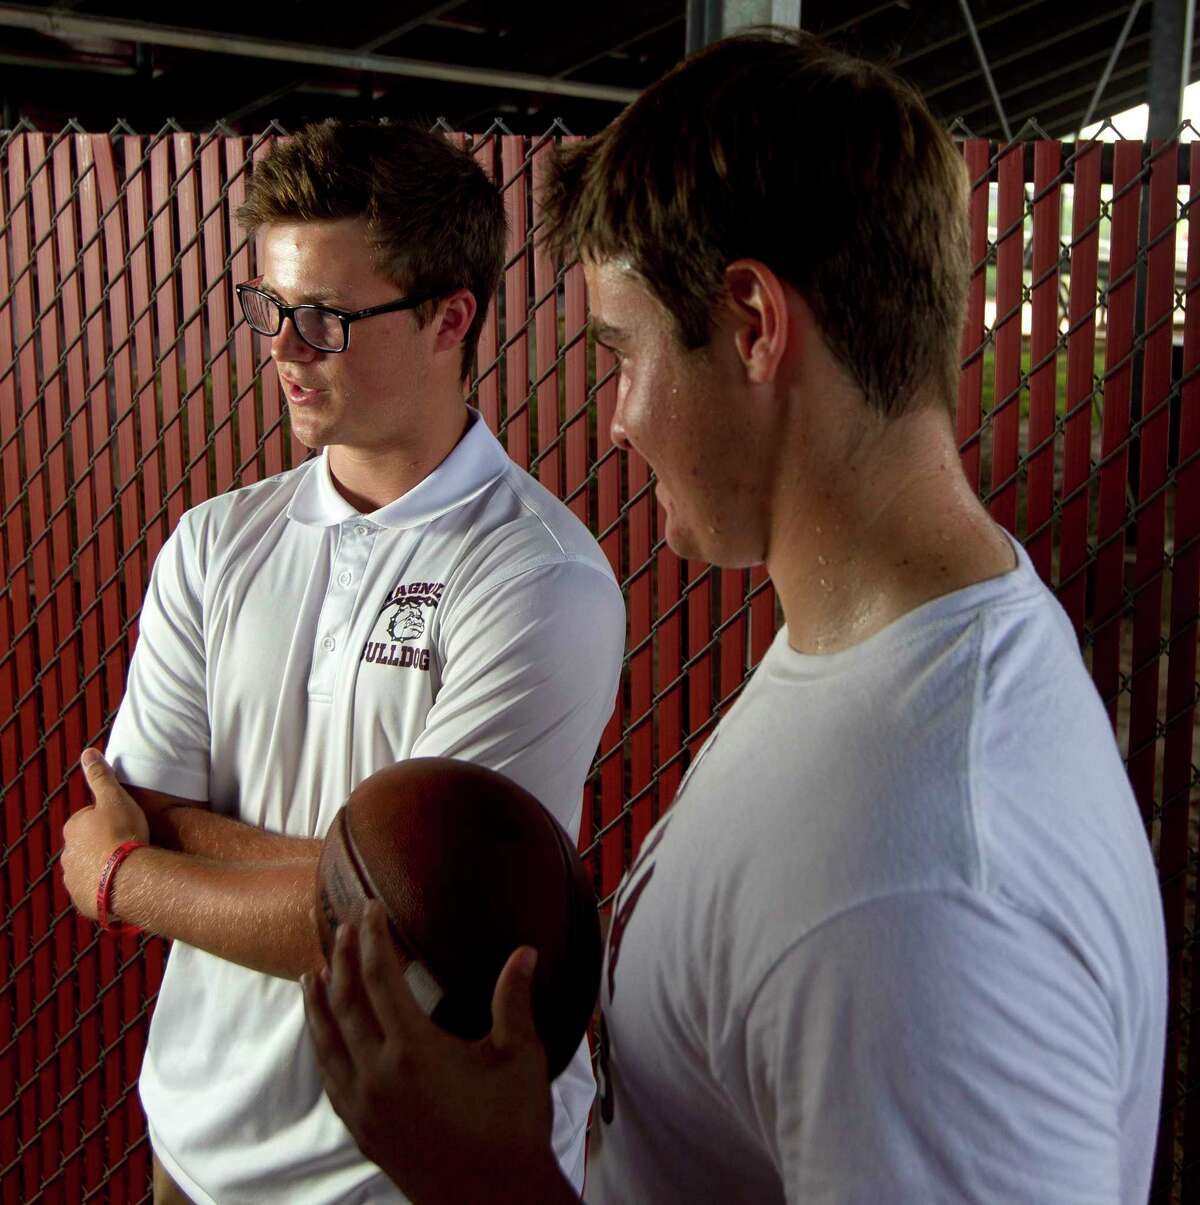 Magnolia punter Reid Bauer, left, talks about expectations for the upcoming season along side snapper Justin Mader during a portrait session at Magnolia High School, Thursday, June 29, 2017, in Magnolia.